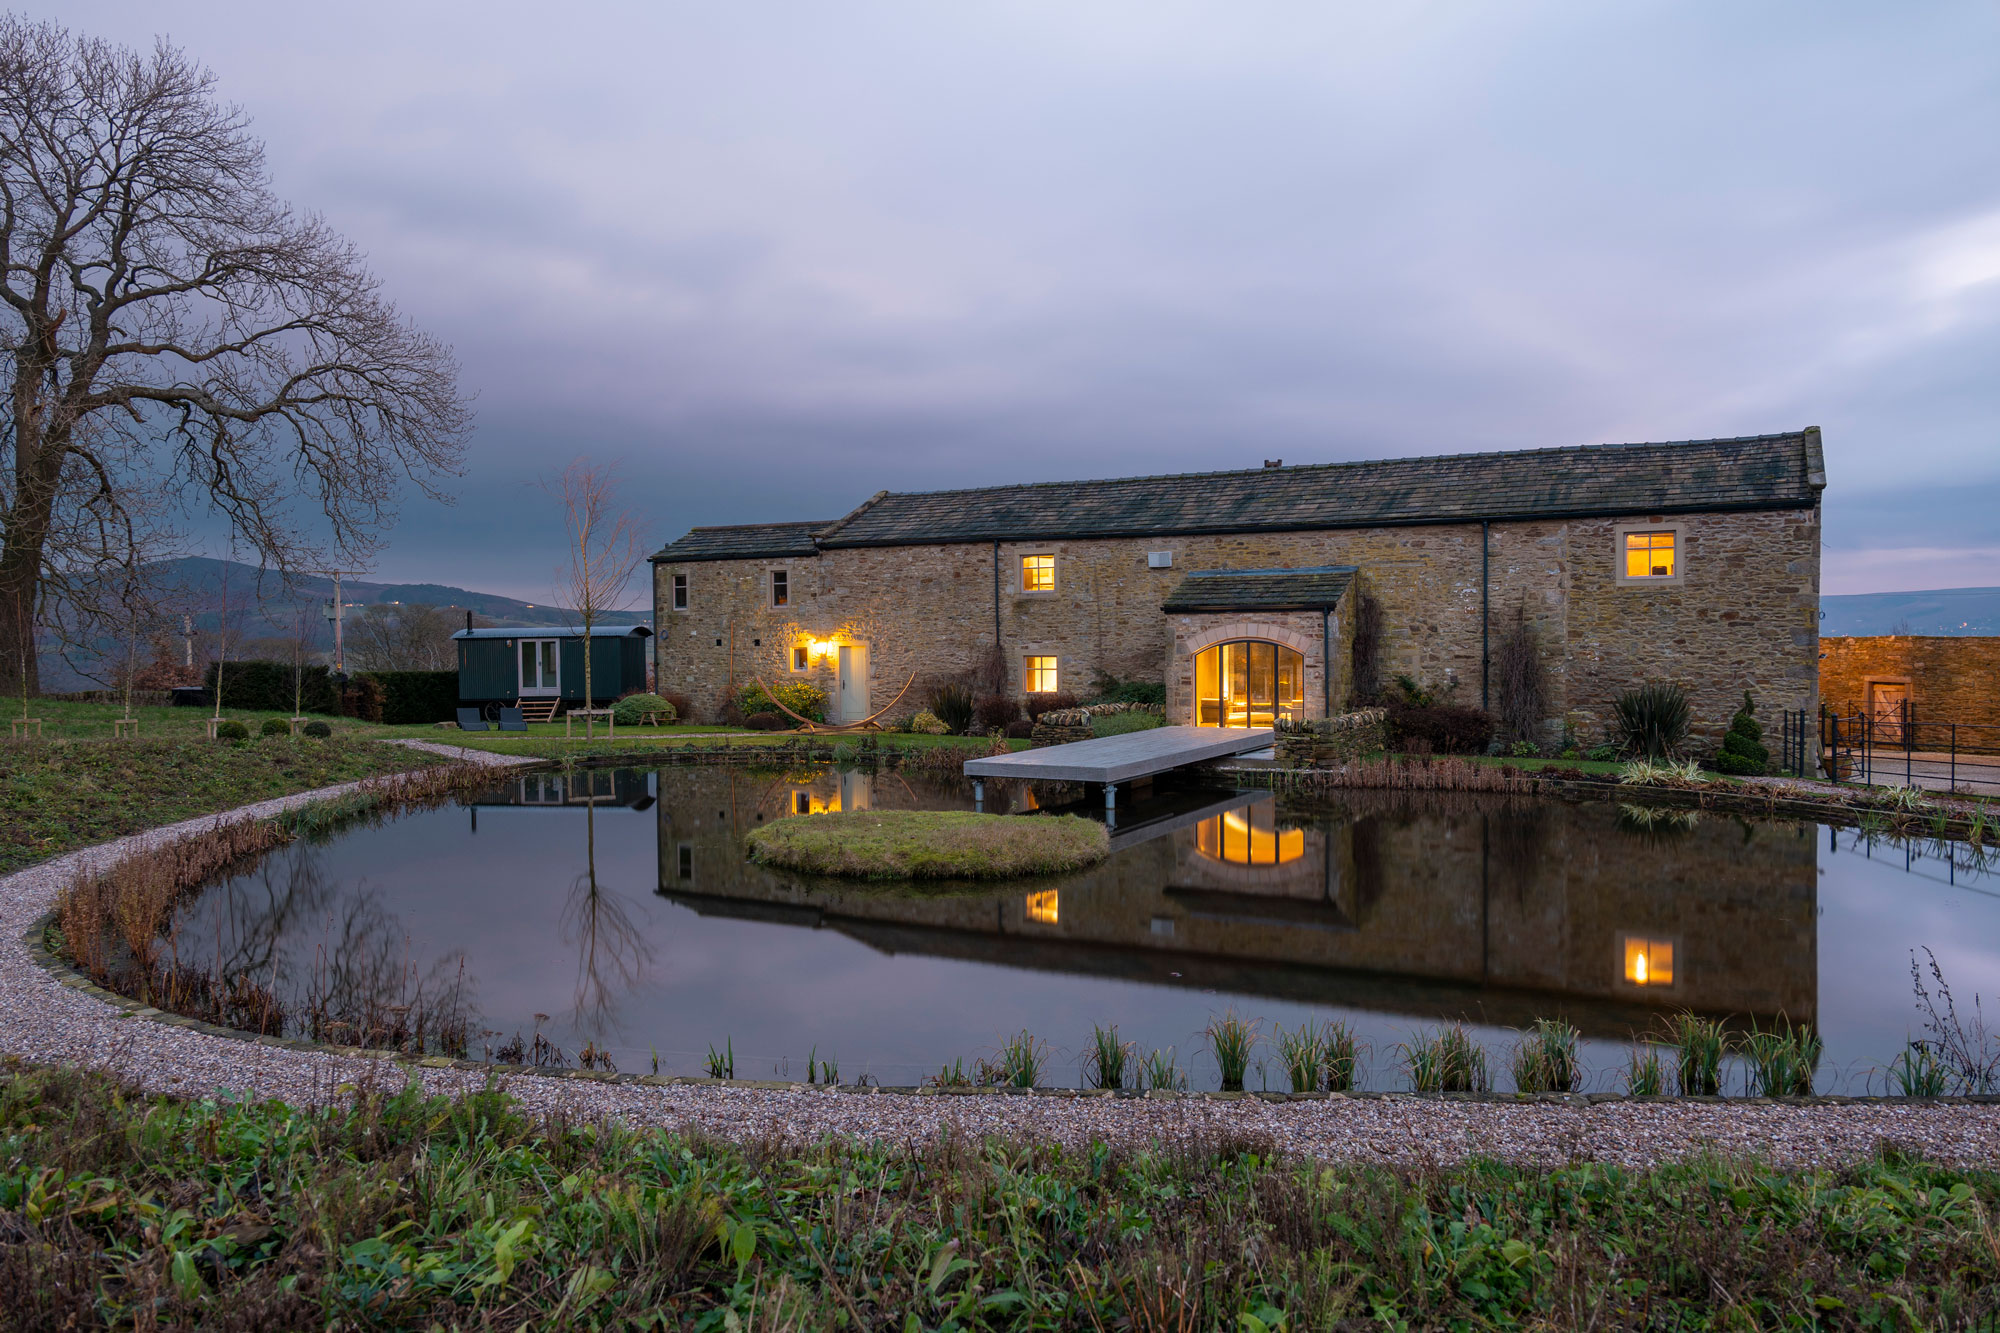 Stone farmhouse building with moat around